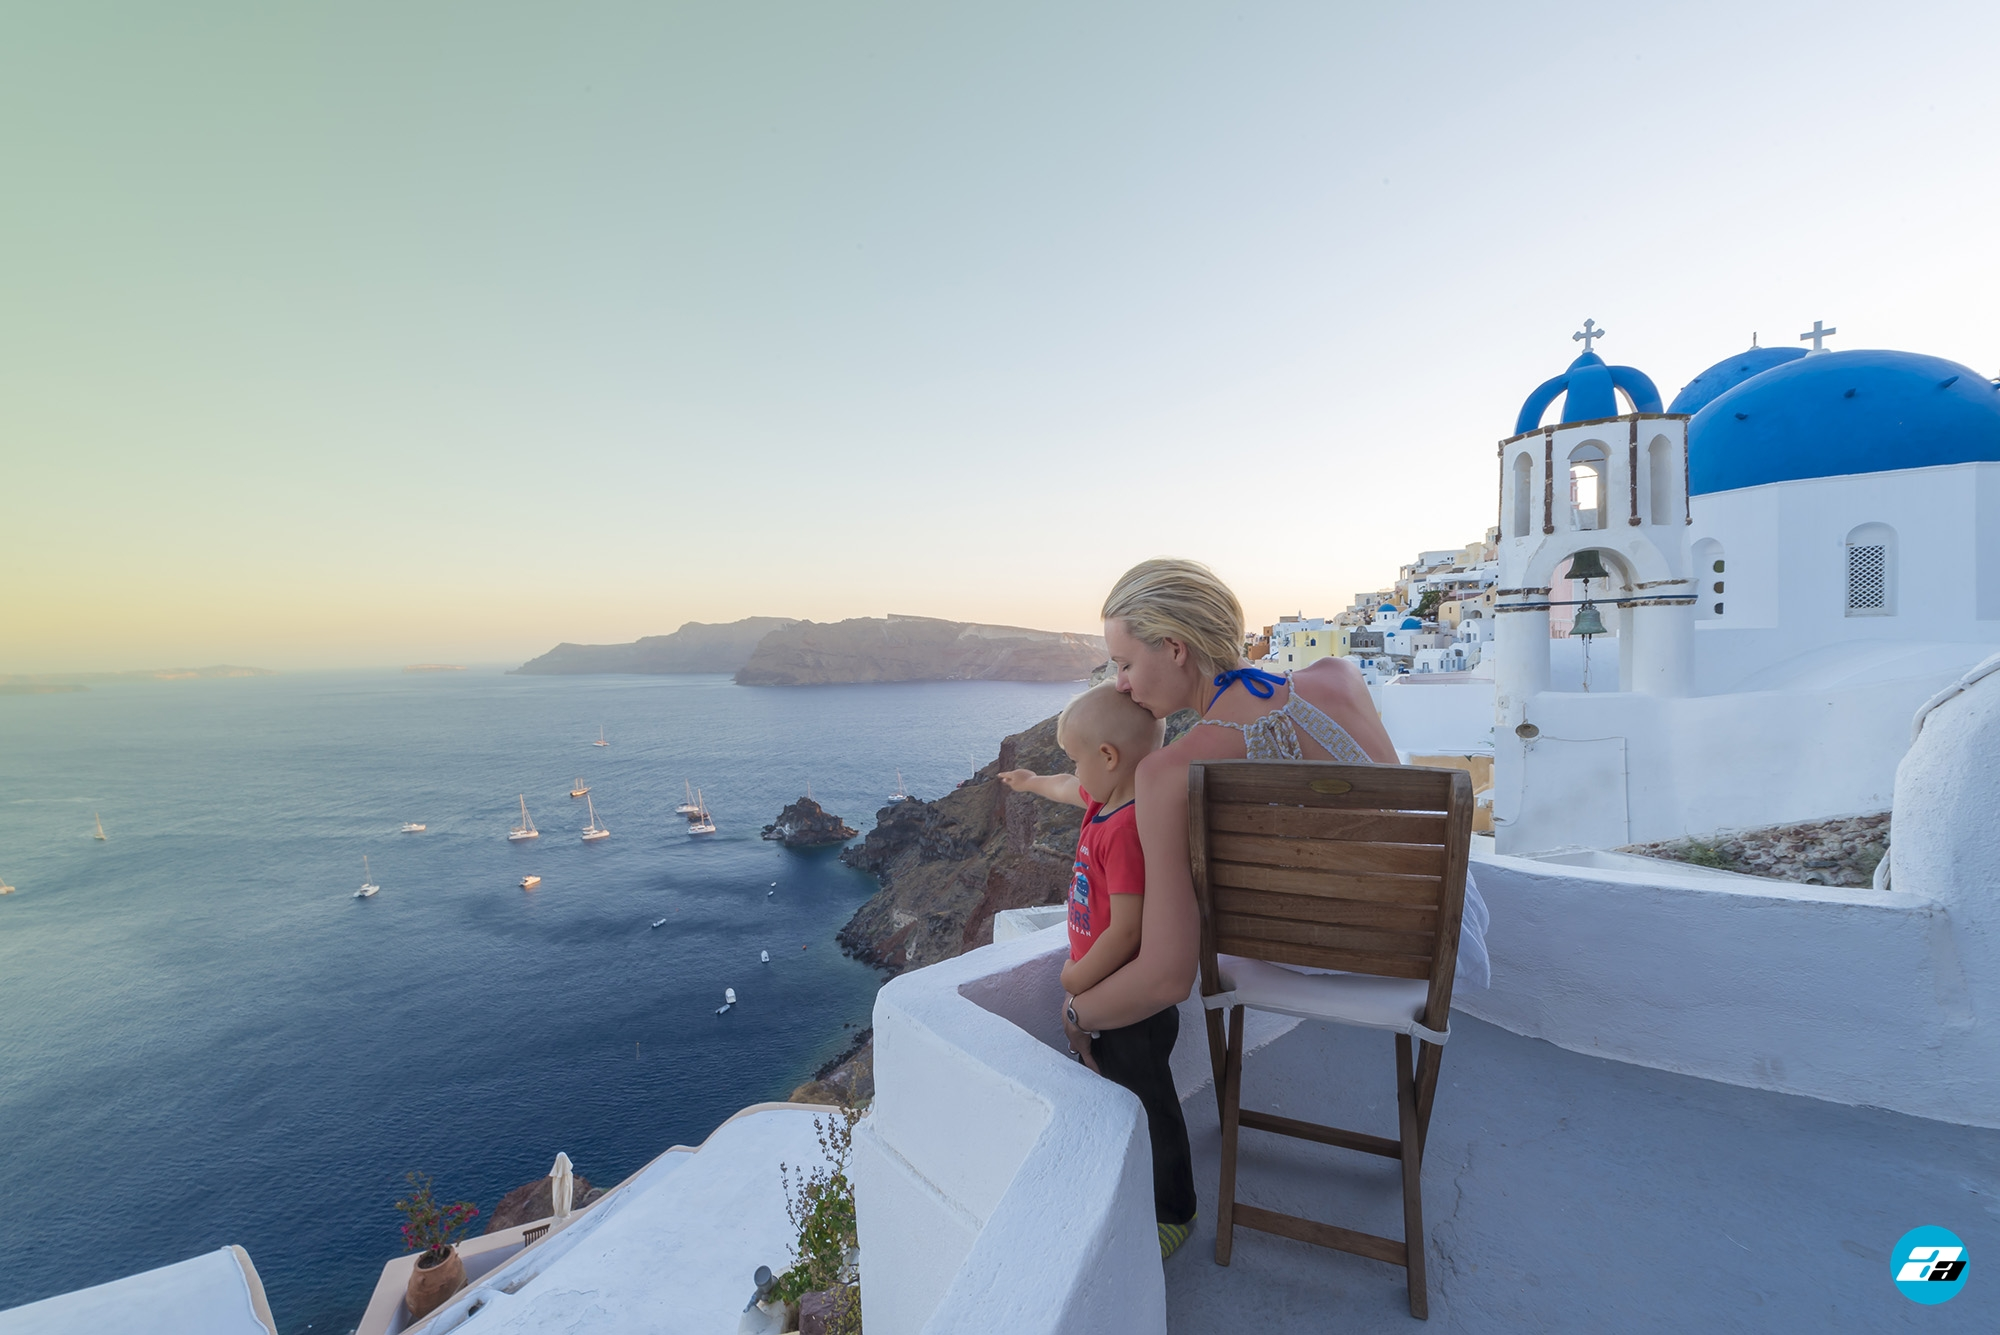 Oia Santorini Greece. Blue domes of Oia. Family. Mother and Son. Family adventure. Travelers.